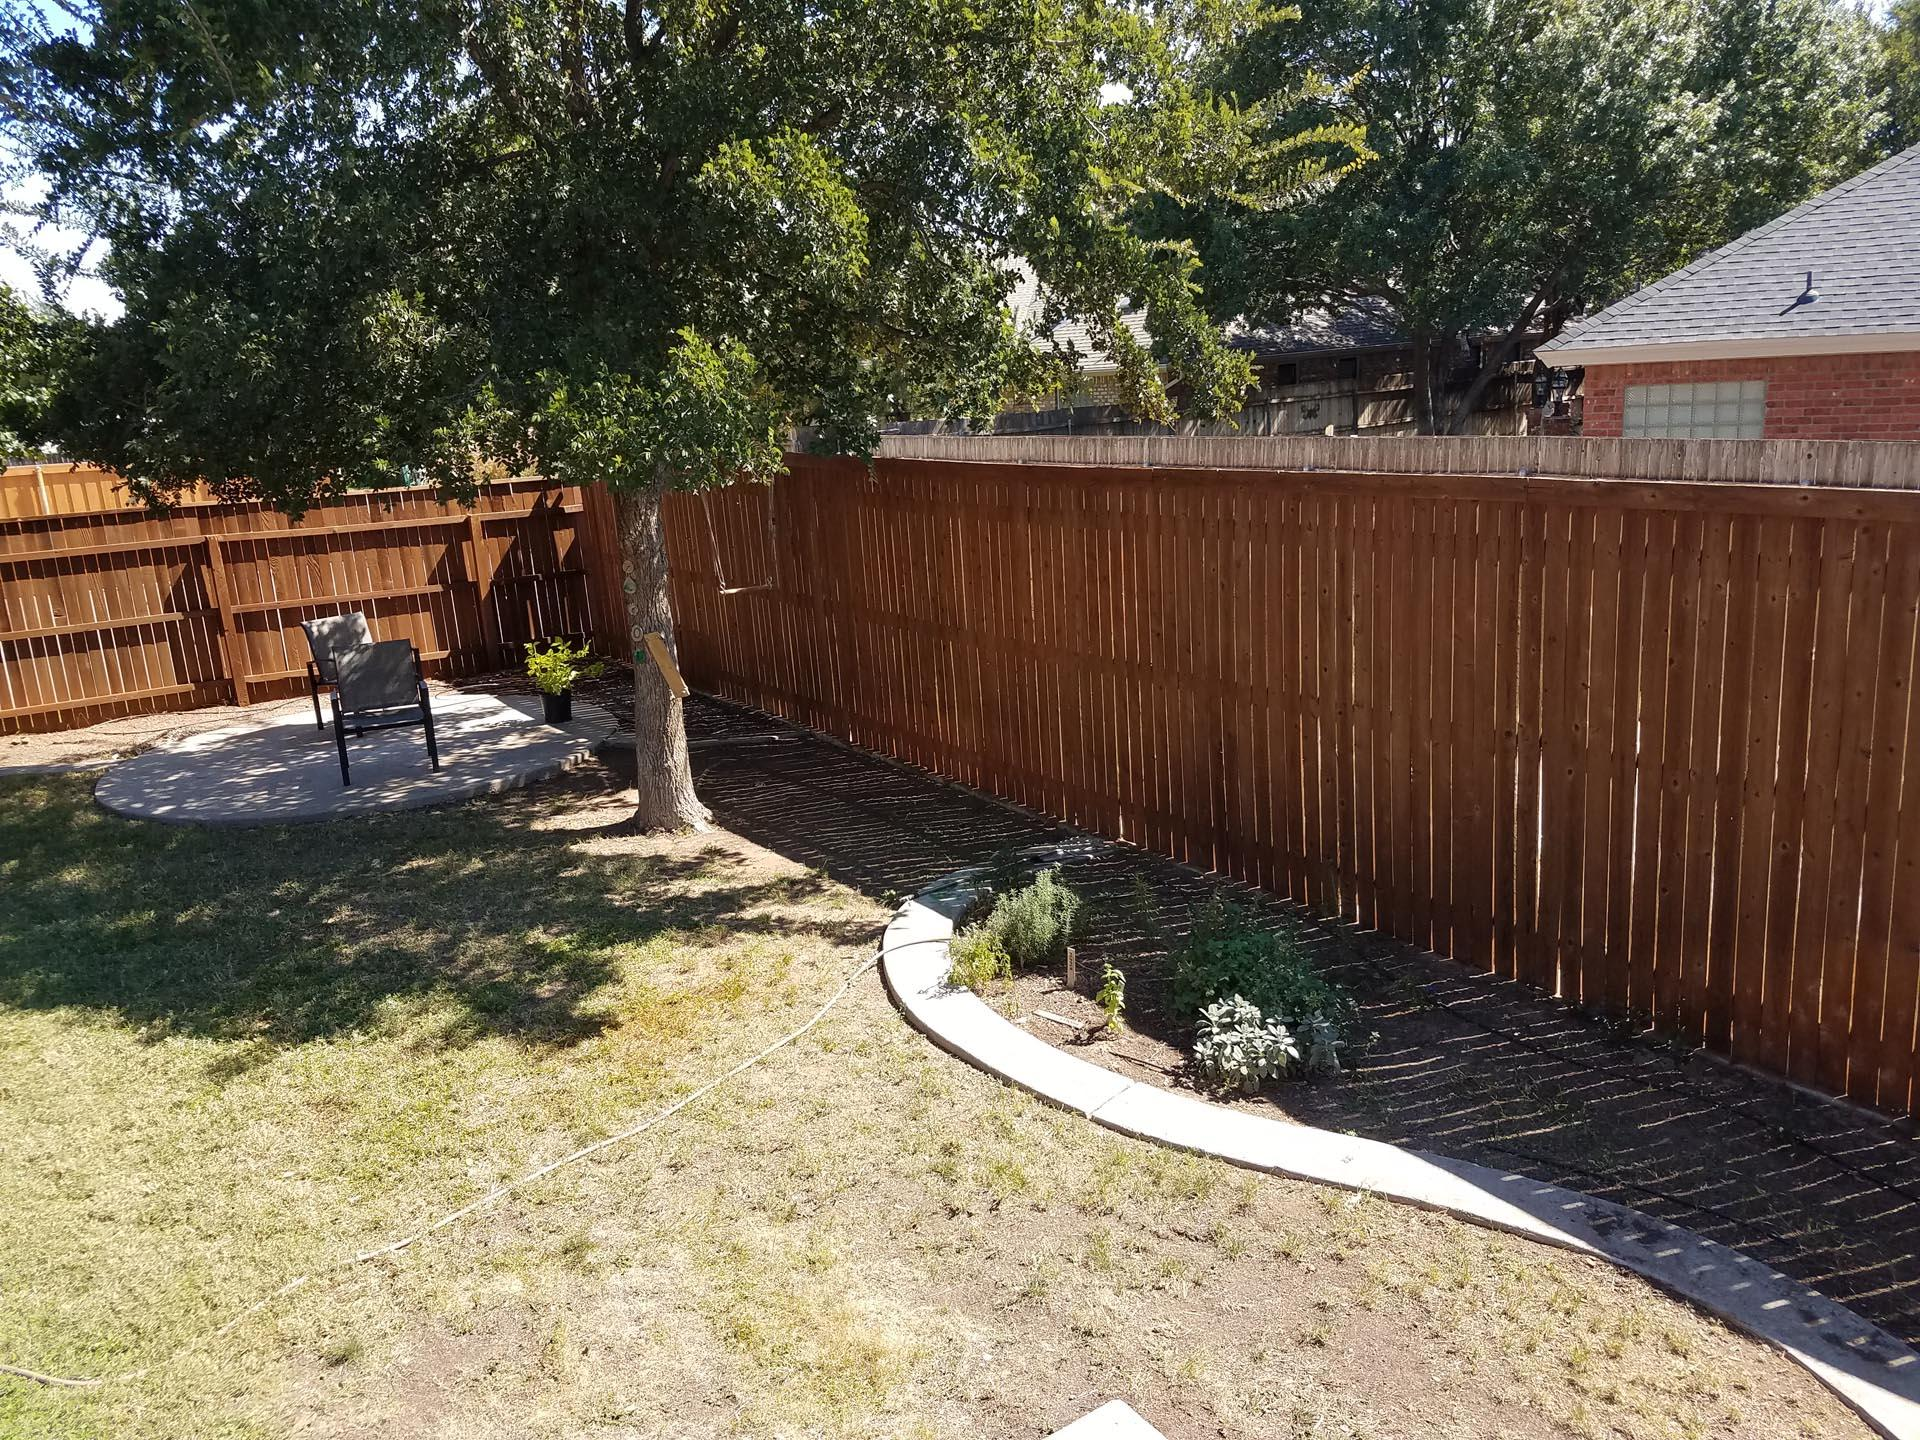 Best Value Fencing And Home Services image 19